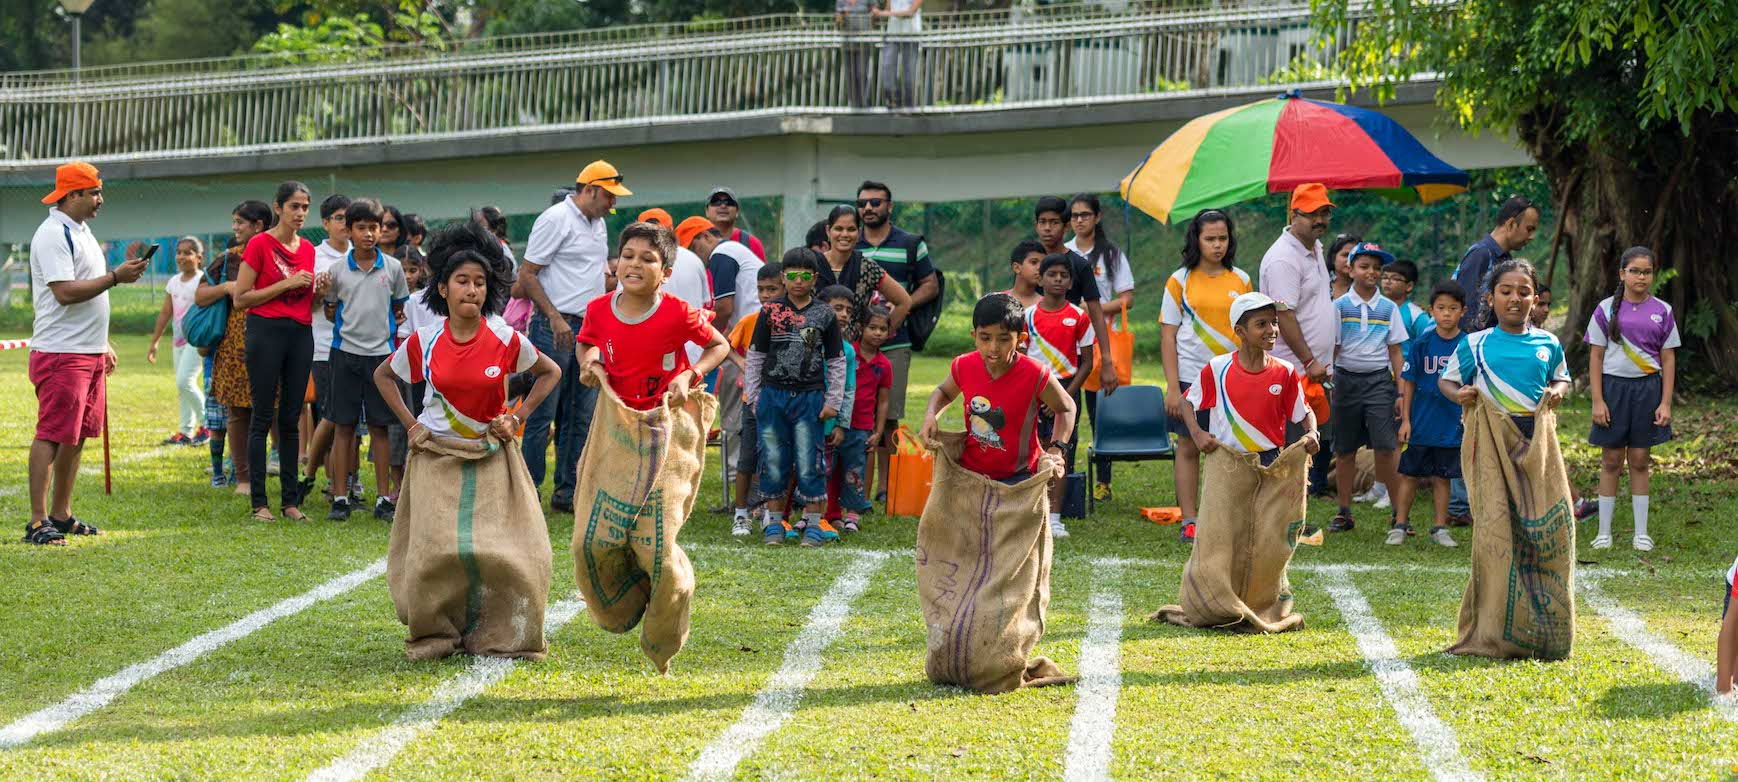 Benefits of playing traditional games